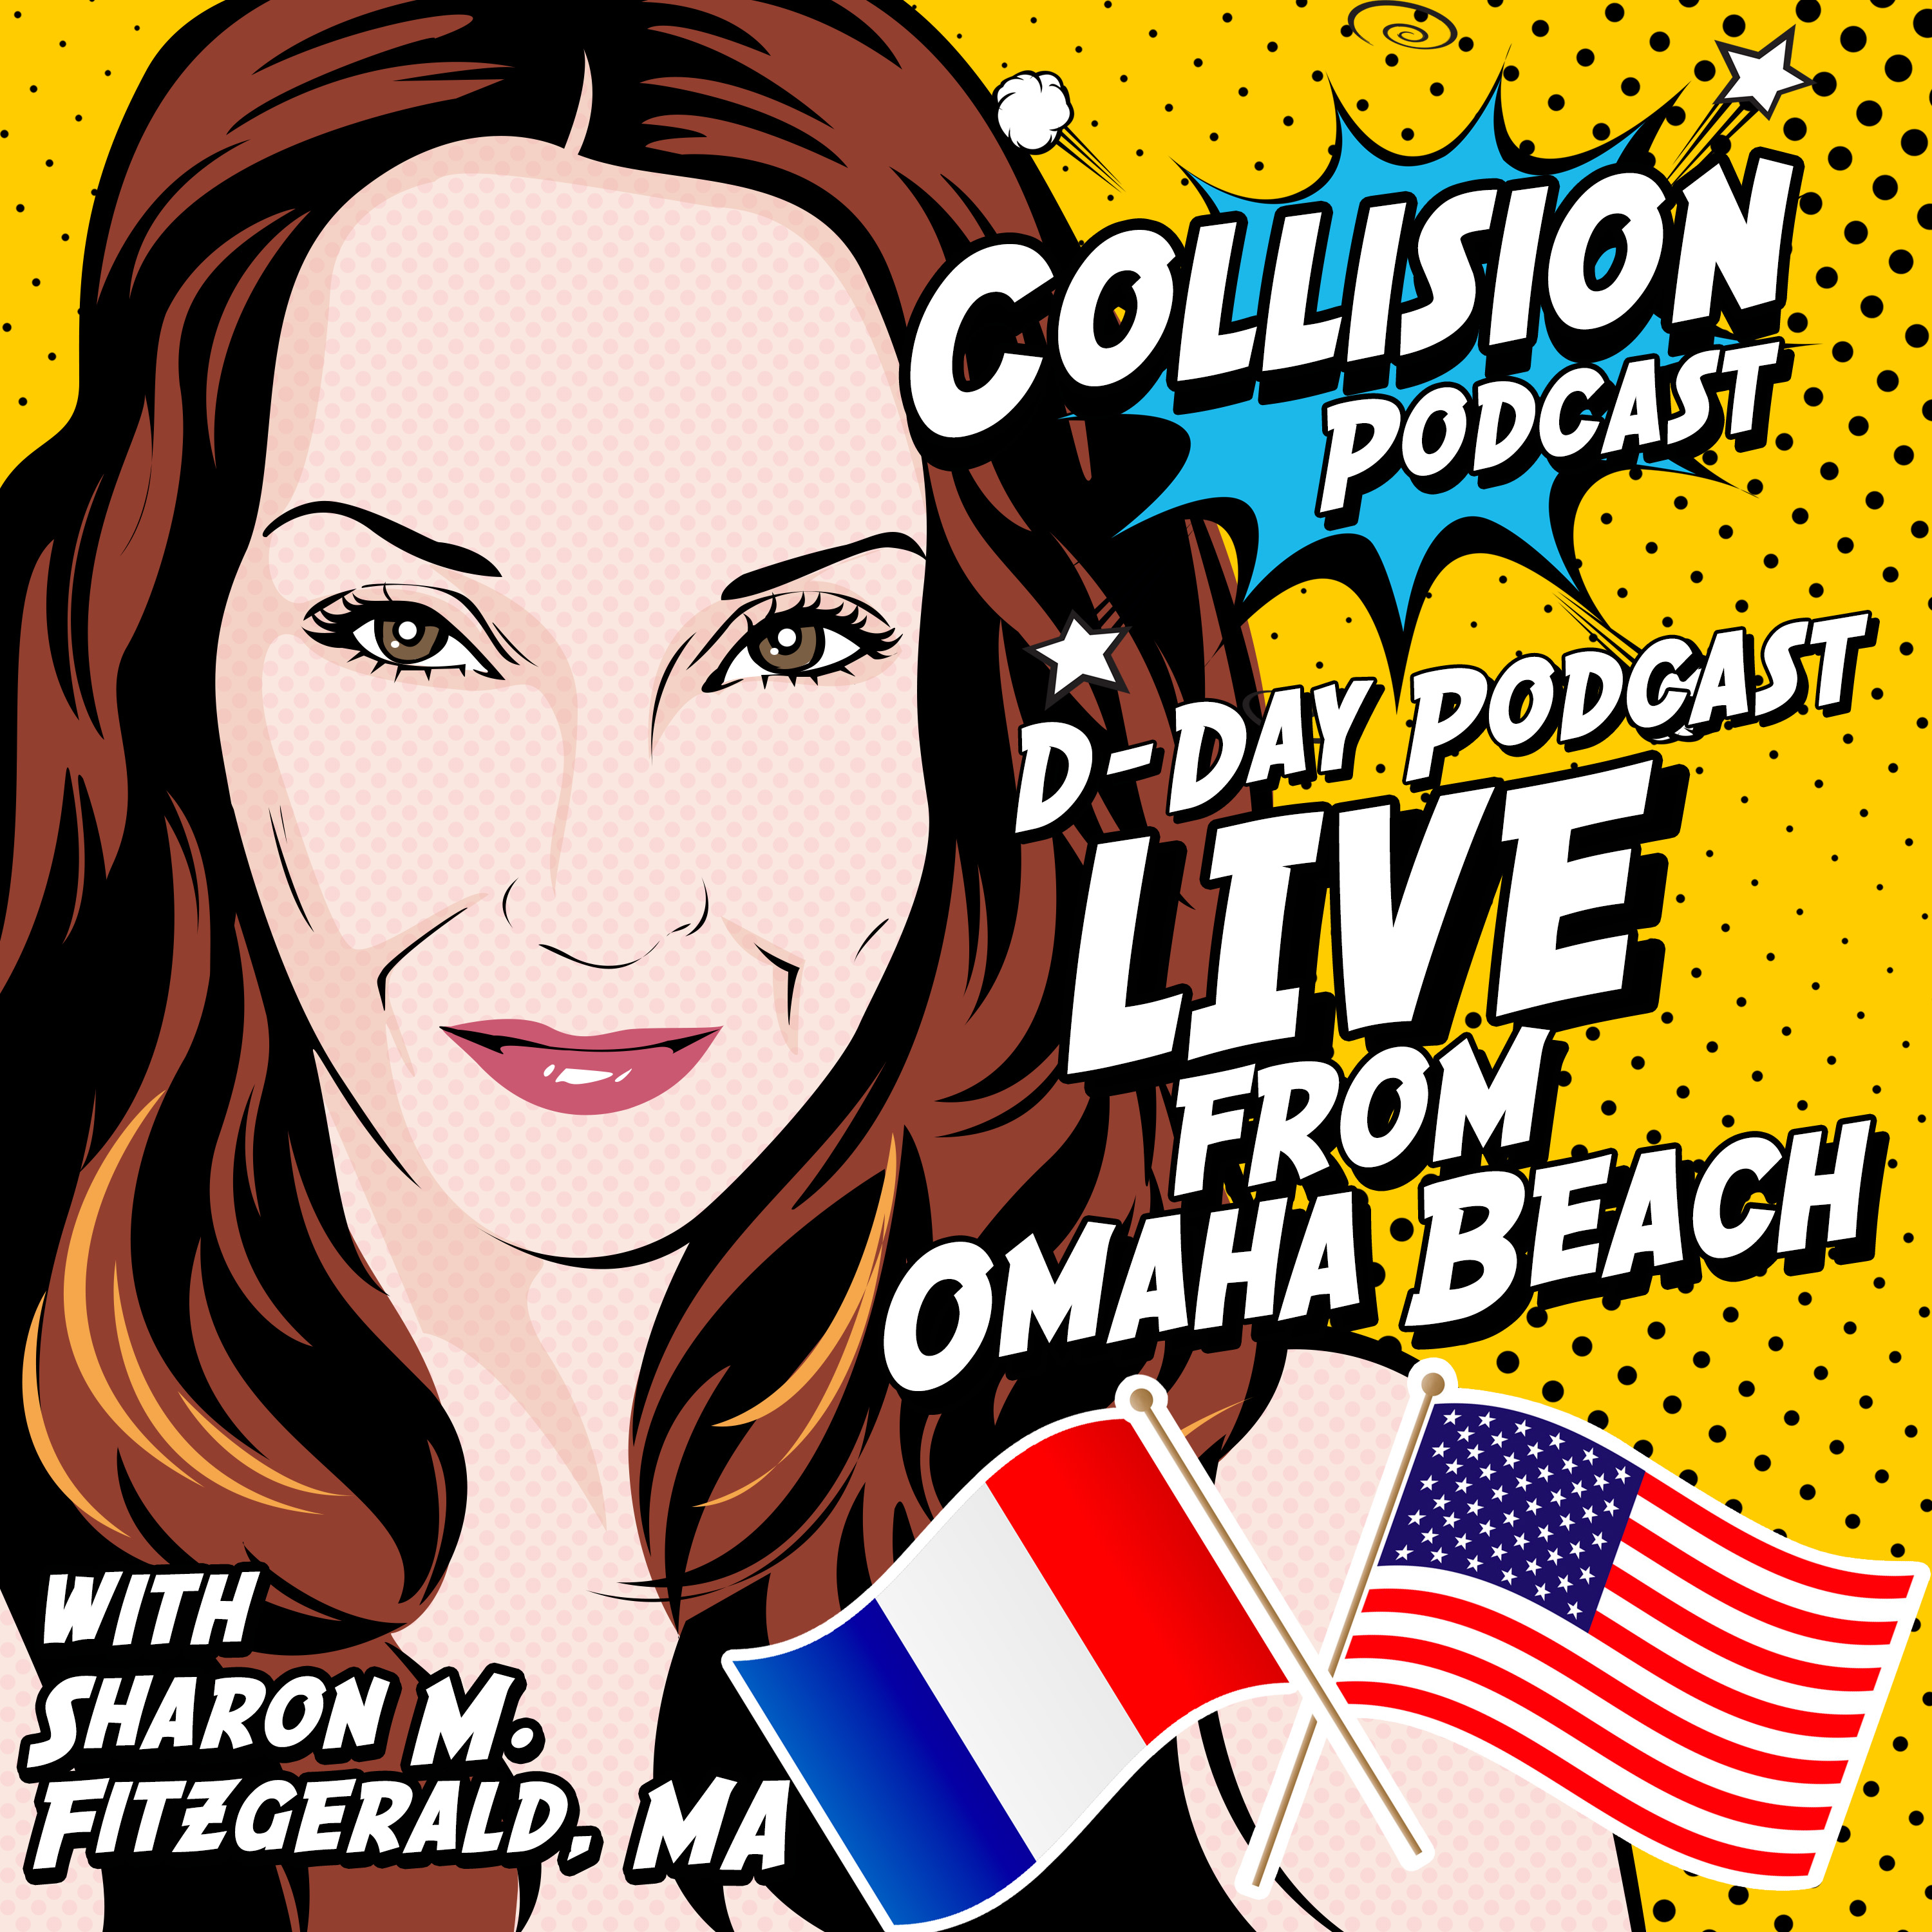 Collision Podcast: D-Day - Live from Omaha Beach show art